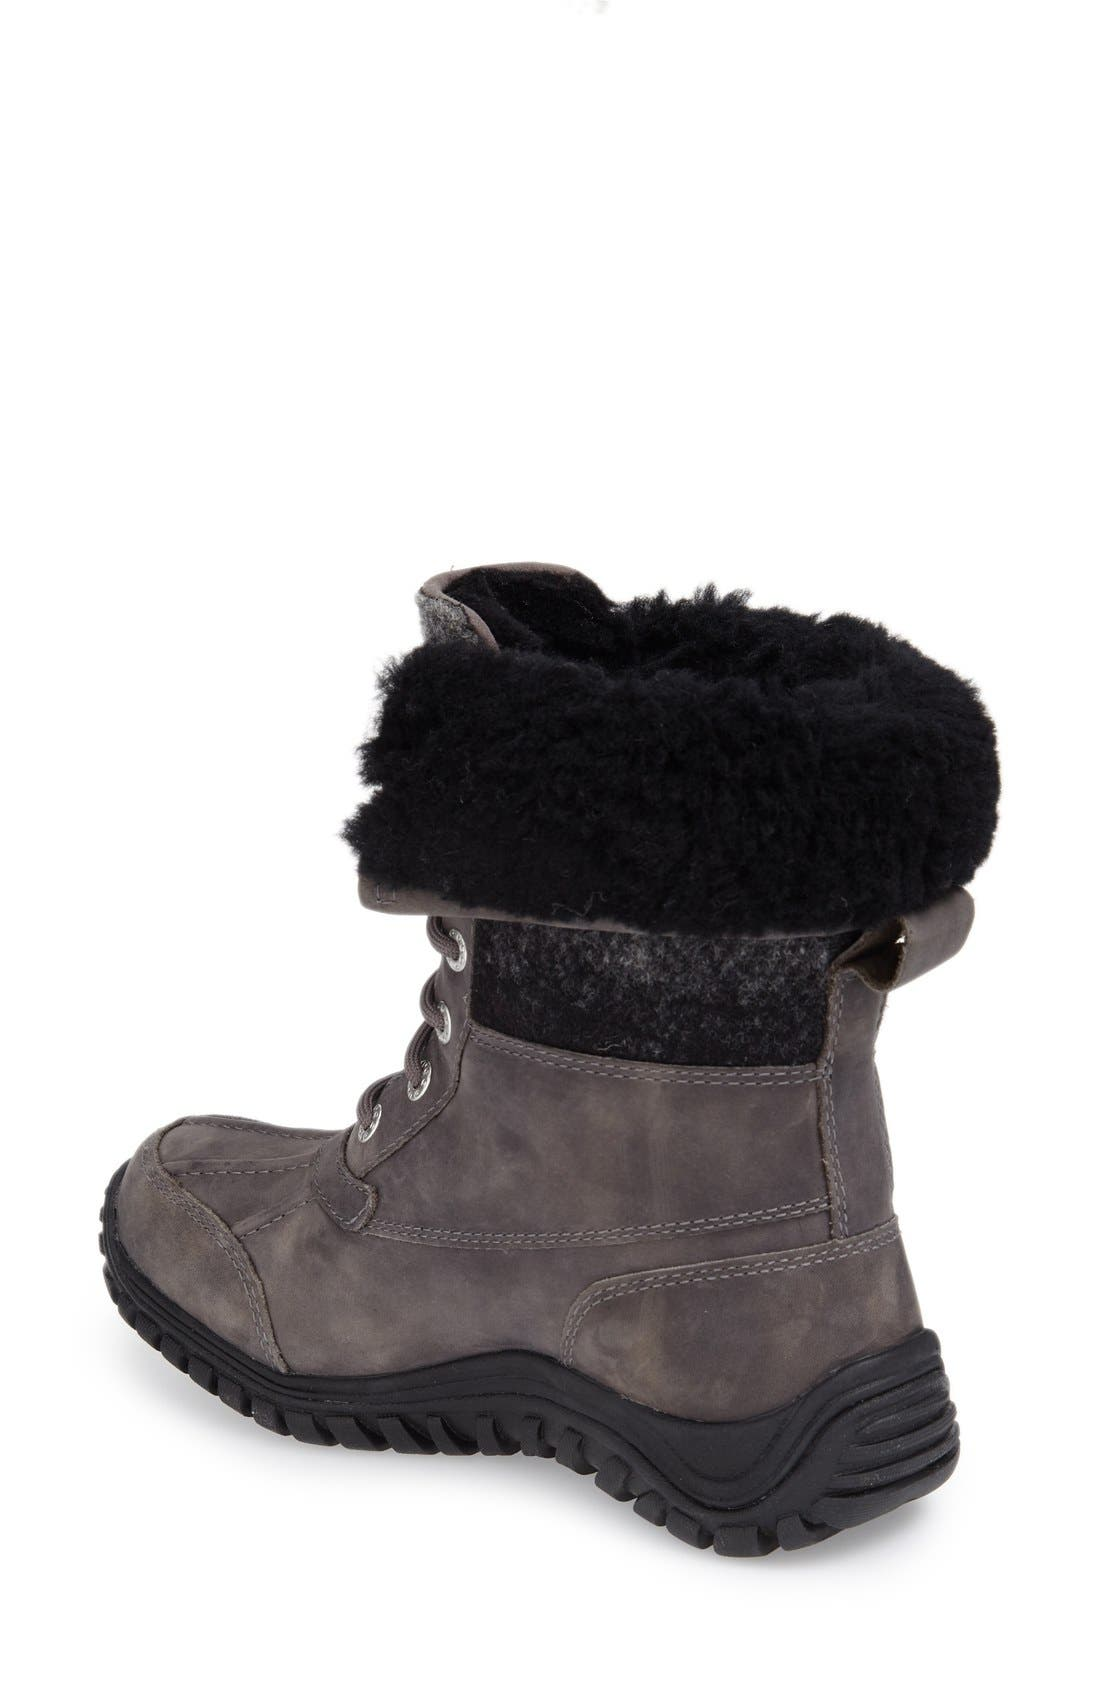 Alternate Image 2  - UGG® Adirondack Waterproof Insulated Winter Boot (Women)